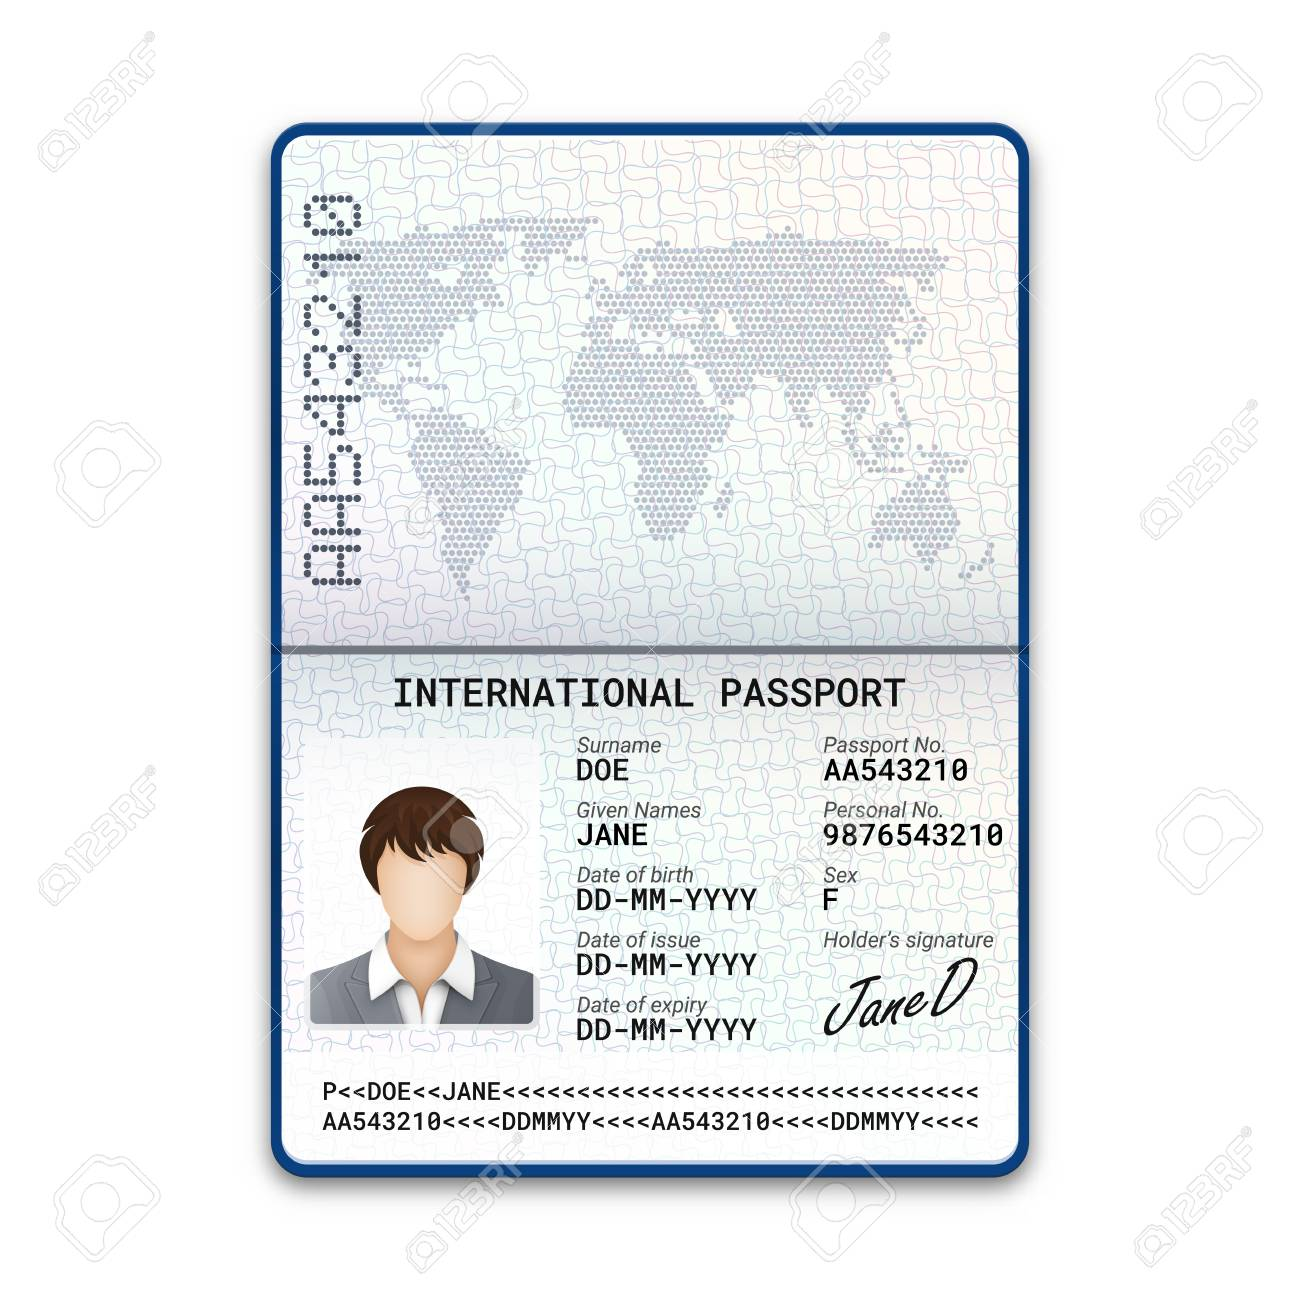 International female passport template with sample of photo,